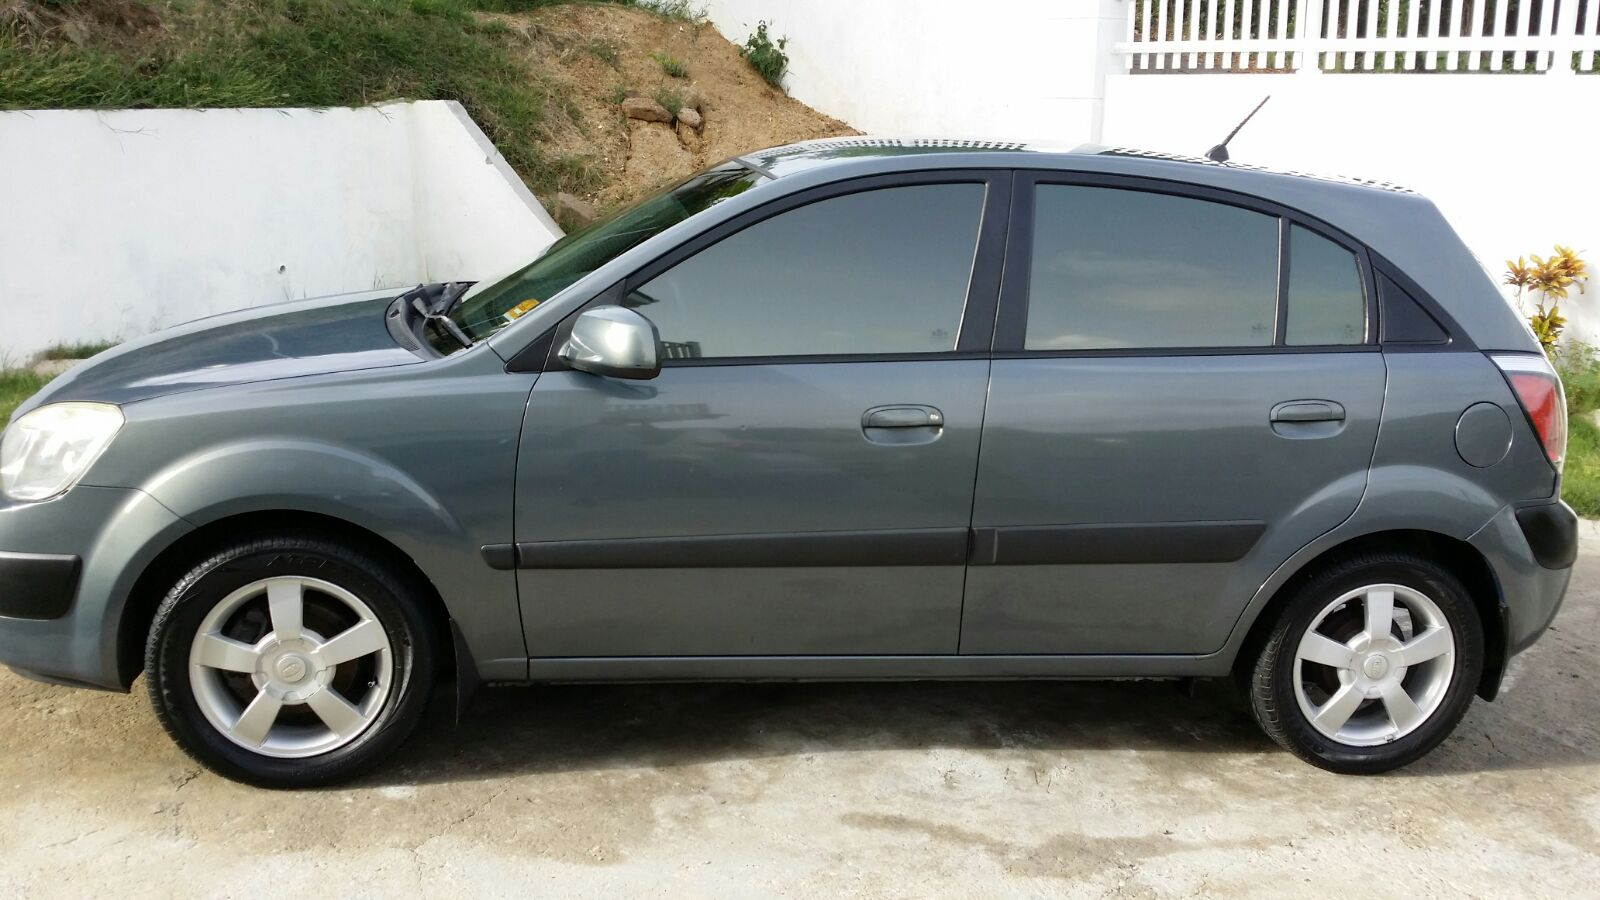 2006 kia rio autolist st lucia cars suvs boats bikes trucks buses pickups for sale and rent. Black Bedroom Furniture Sets. Home Design Ideas